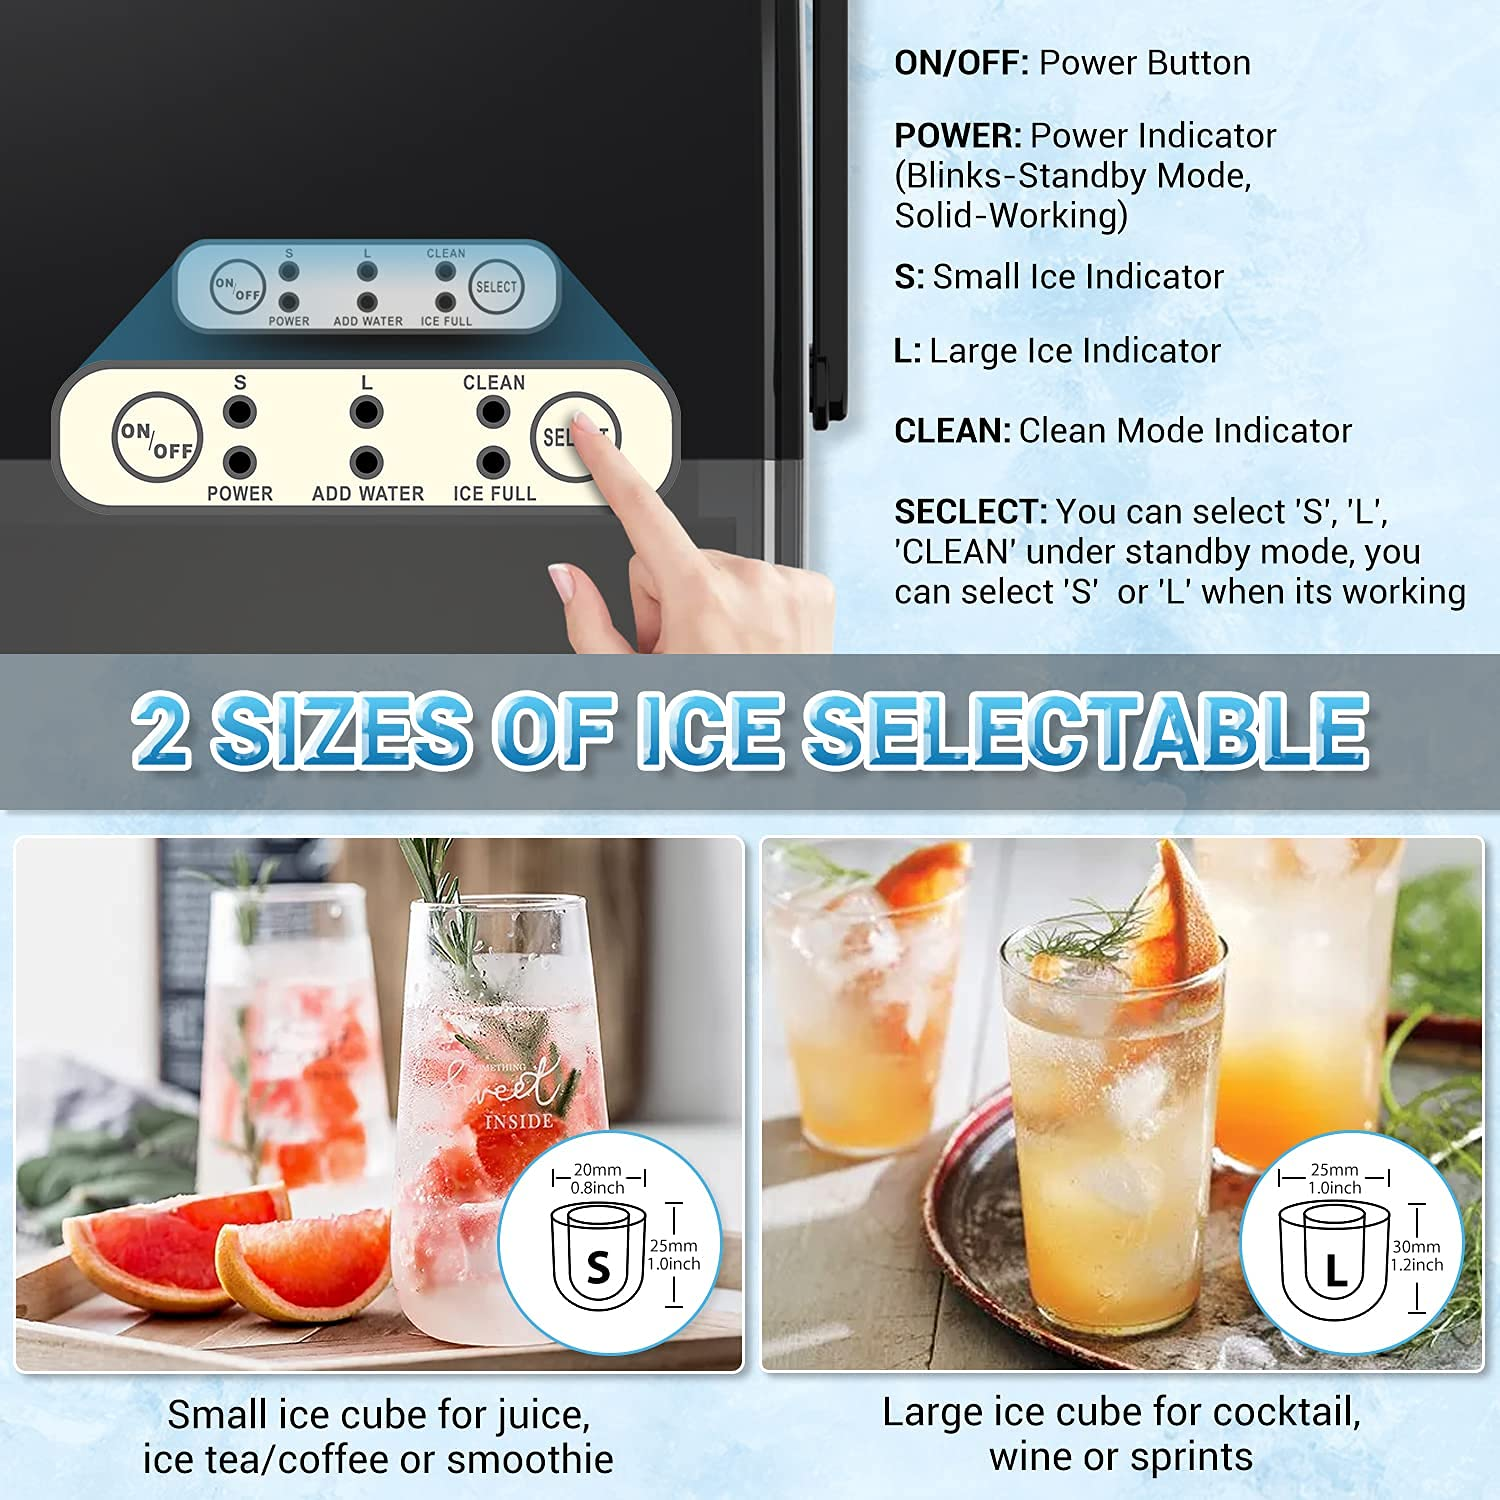 Countertop Ice Maker Machine, Elechomes Portable Ice Maker with Handle, 27lbs Ice Per Day, Compact Ice Machine with Self-Cleaning Function, Perfect for Home, Kitchen and Office